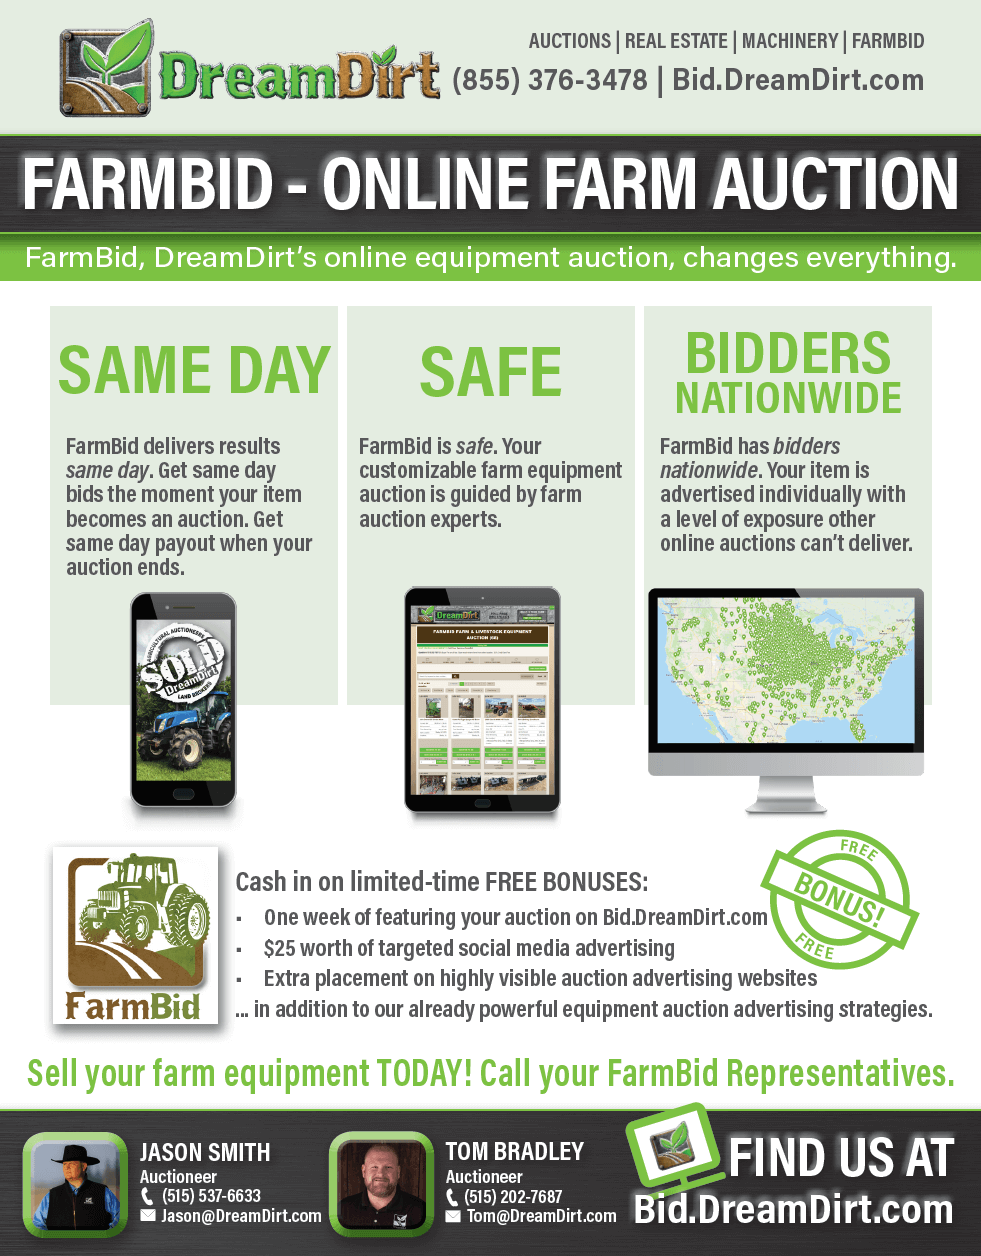 Image of a flyer about FarmBid.